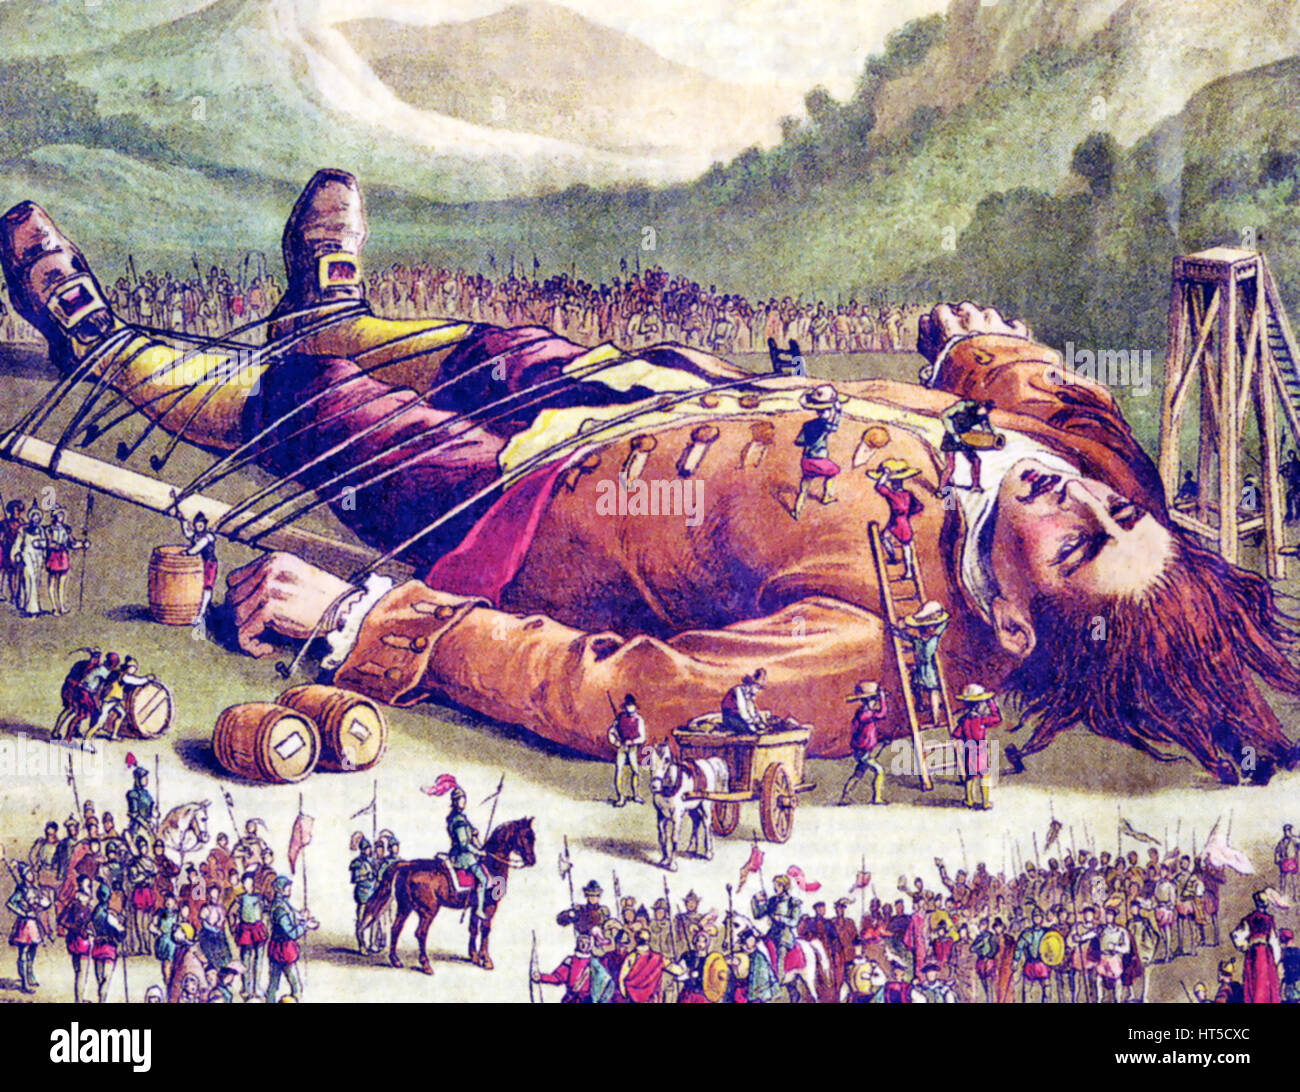 imagery in the gulliver travels Literary analysis essay: gulliver's travels gregg poisel hum 3000 although the textbook uses only an excerpt from part one of the story, the author tells a tale that provides interesting perspectives and symbolism on humanity's dichotomy of power and servitude.